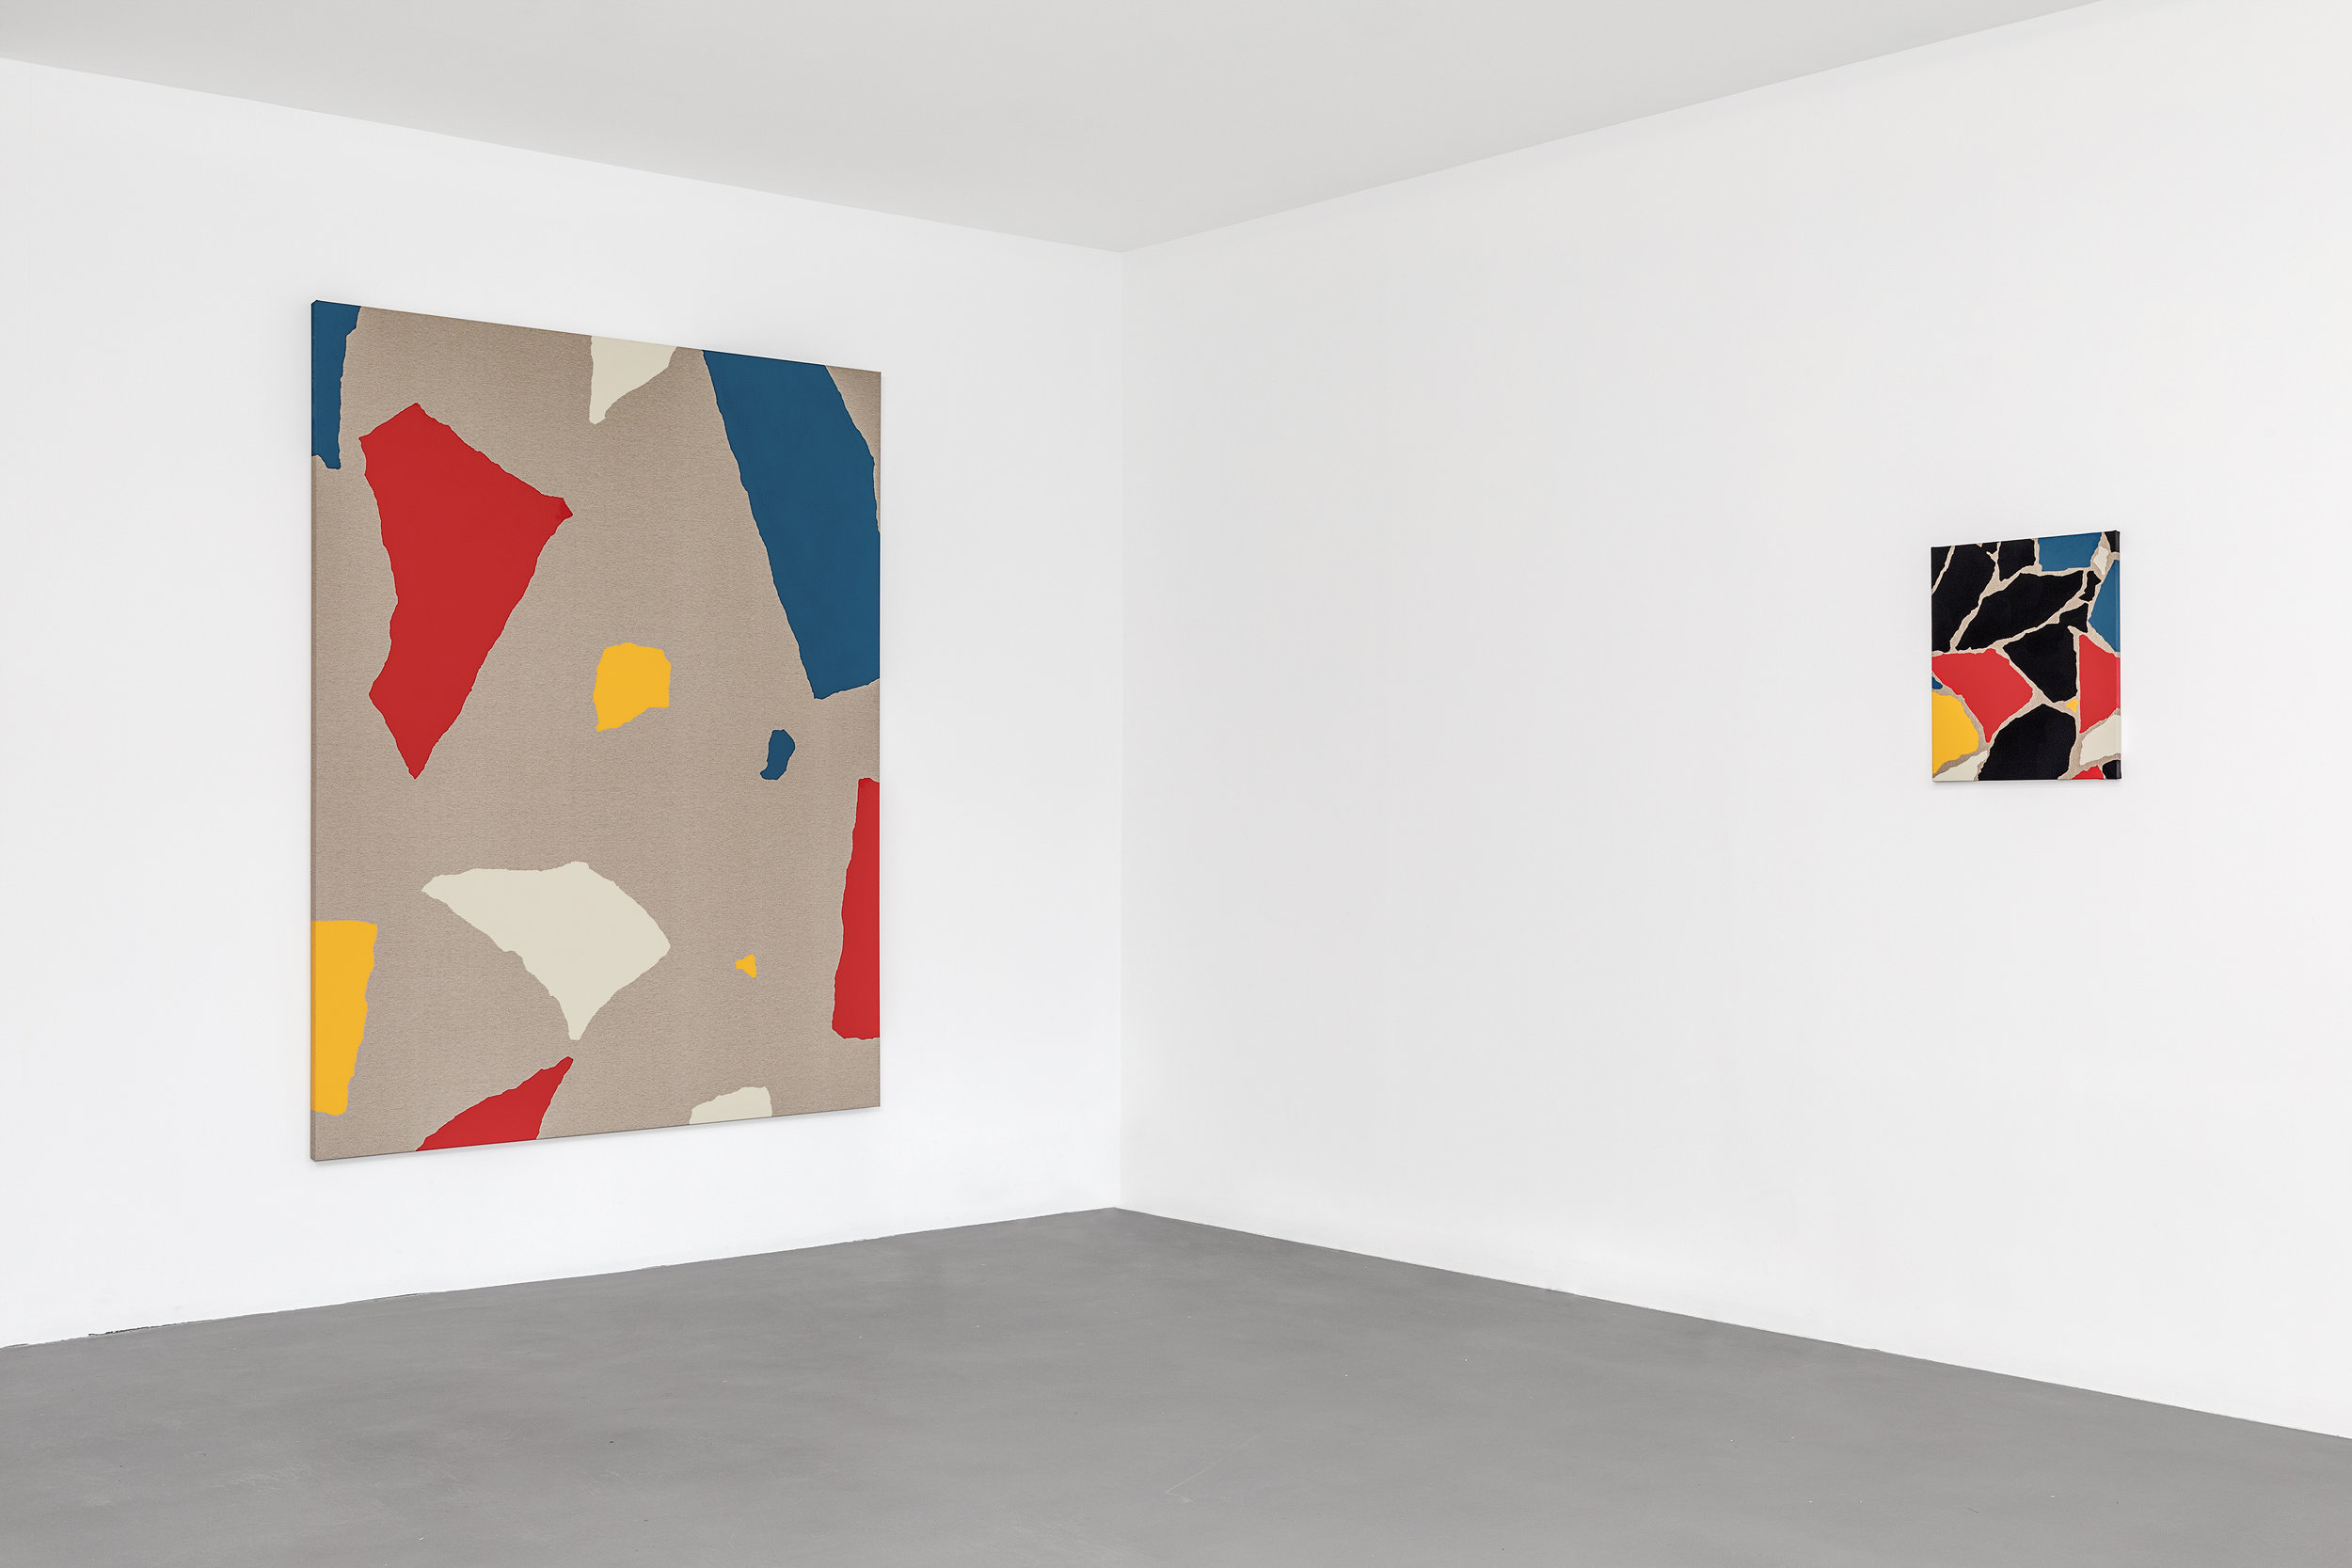 Installation view  Mindlessness , The Dot Project at PRISME, Paris, London.